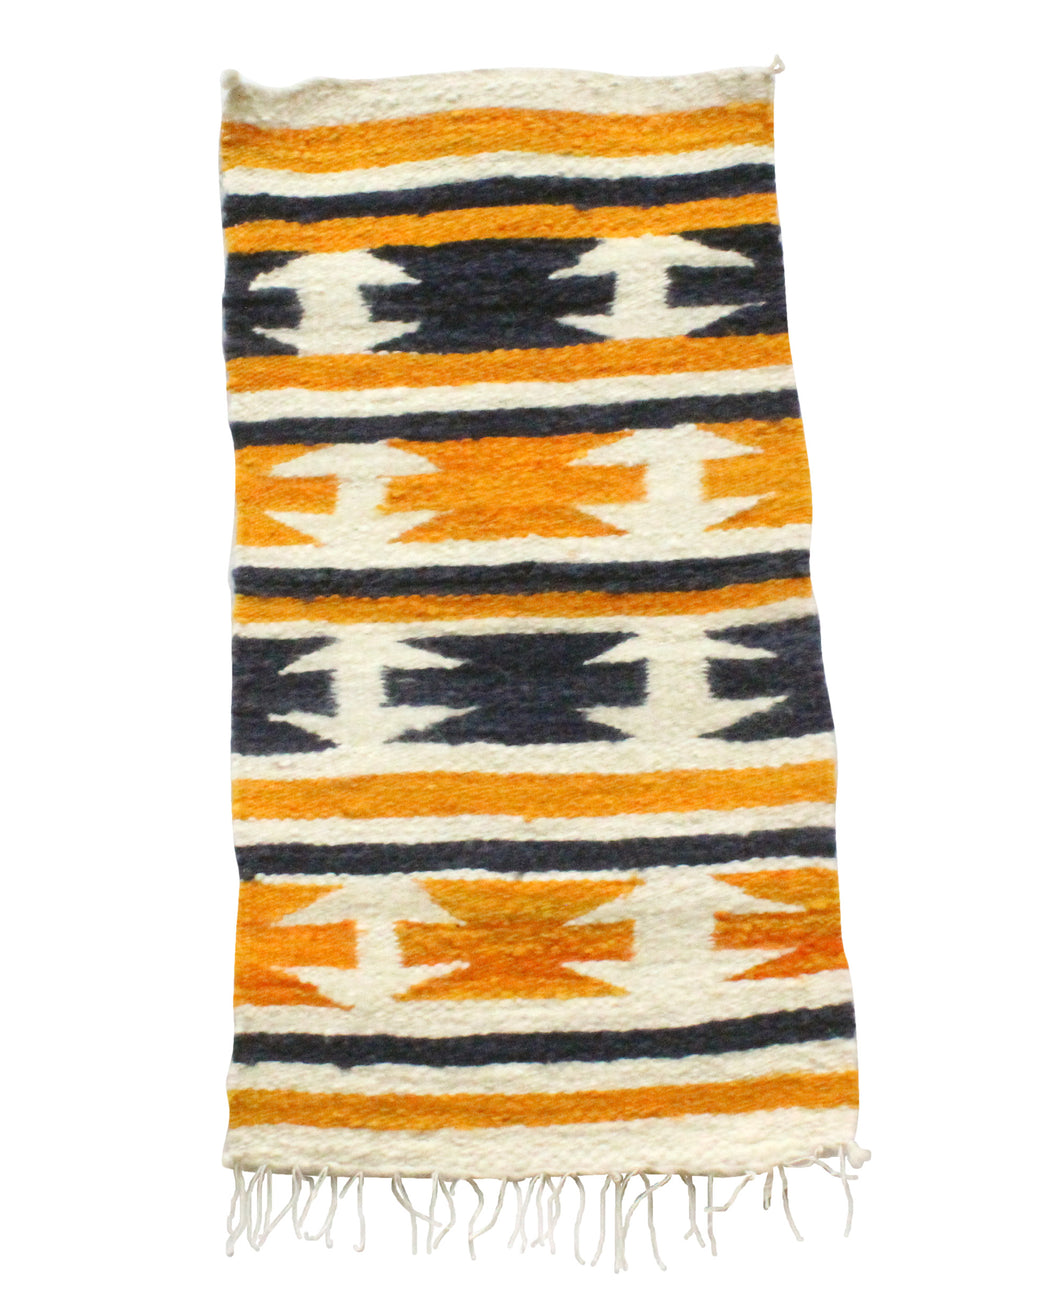 Gallup Throw Rug, Navajo Wool Cotton, Handwoven, 18 x 34.5 in